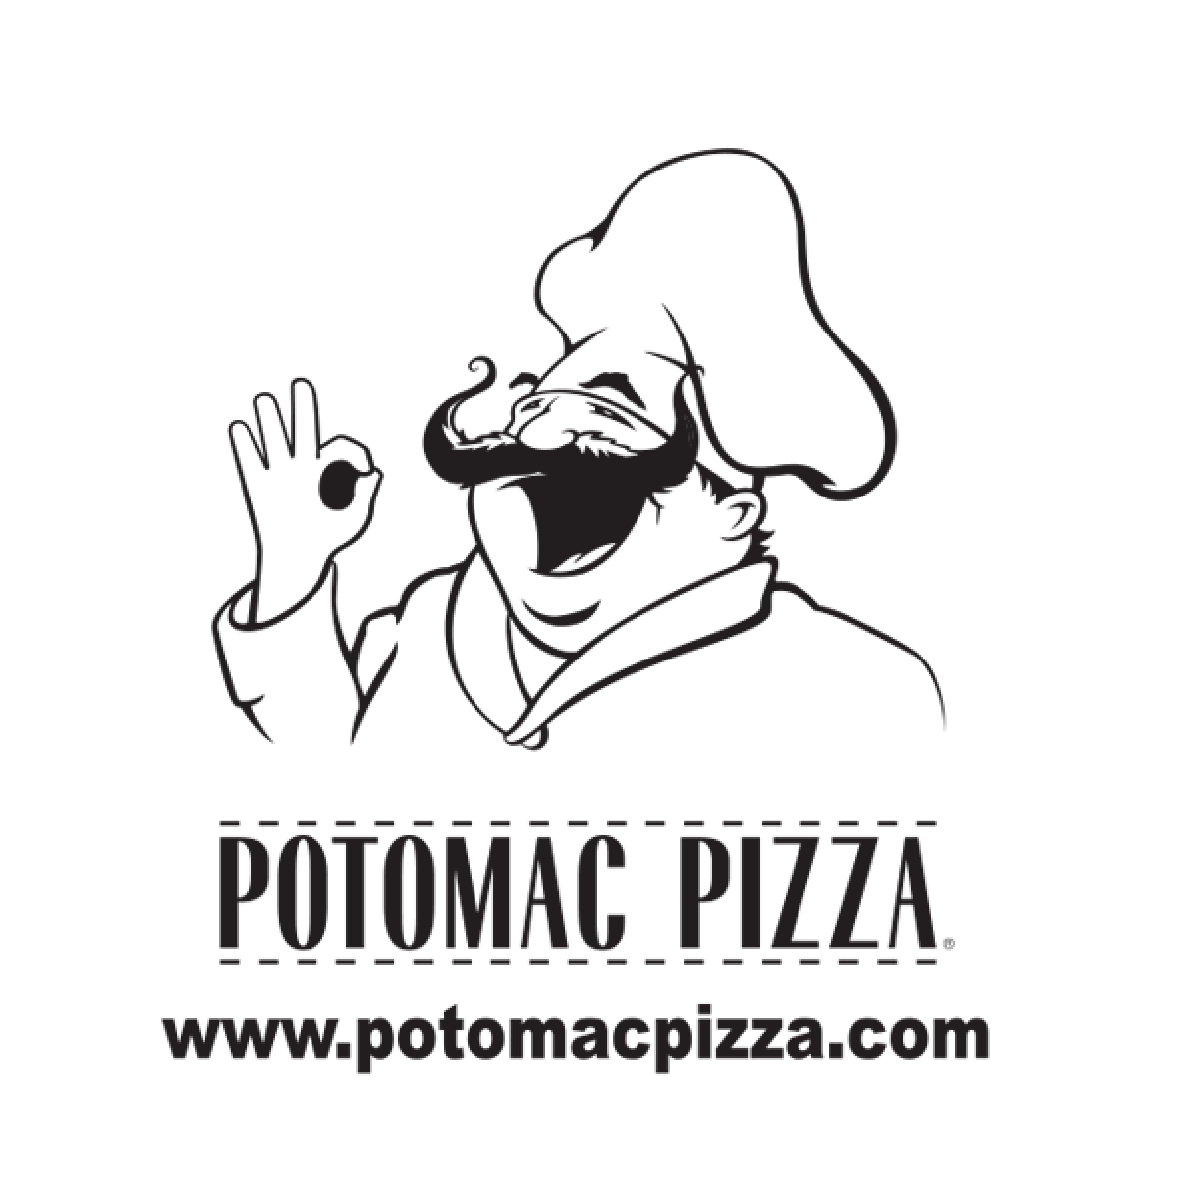 PotomacPizza_BLACK.png